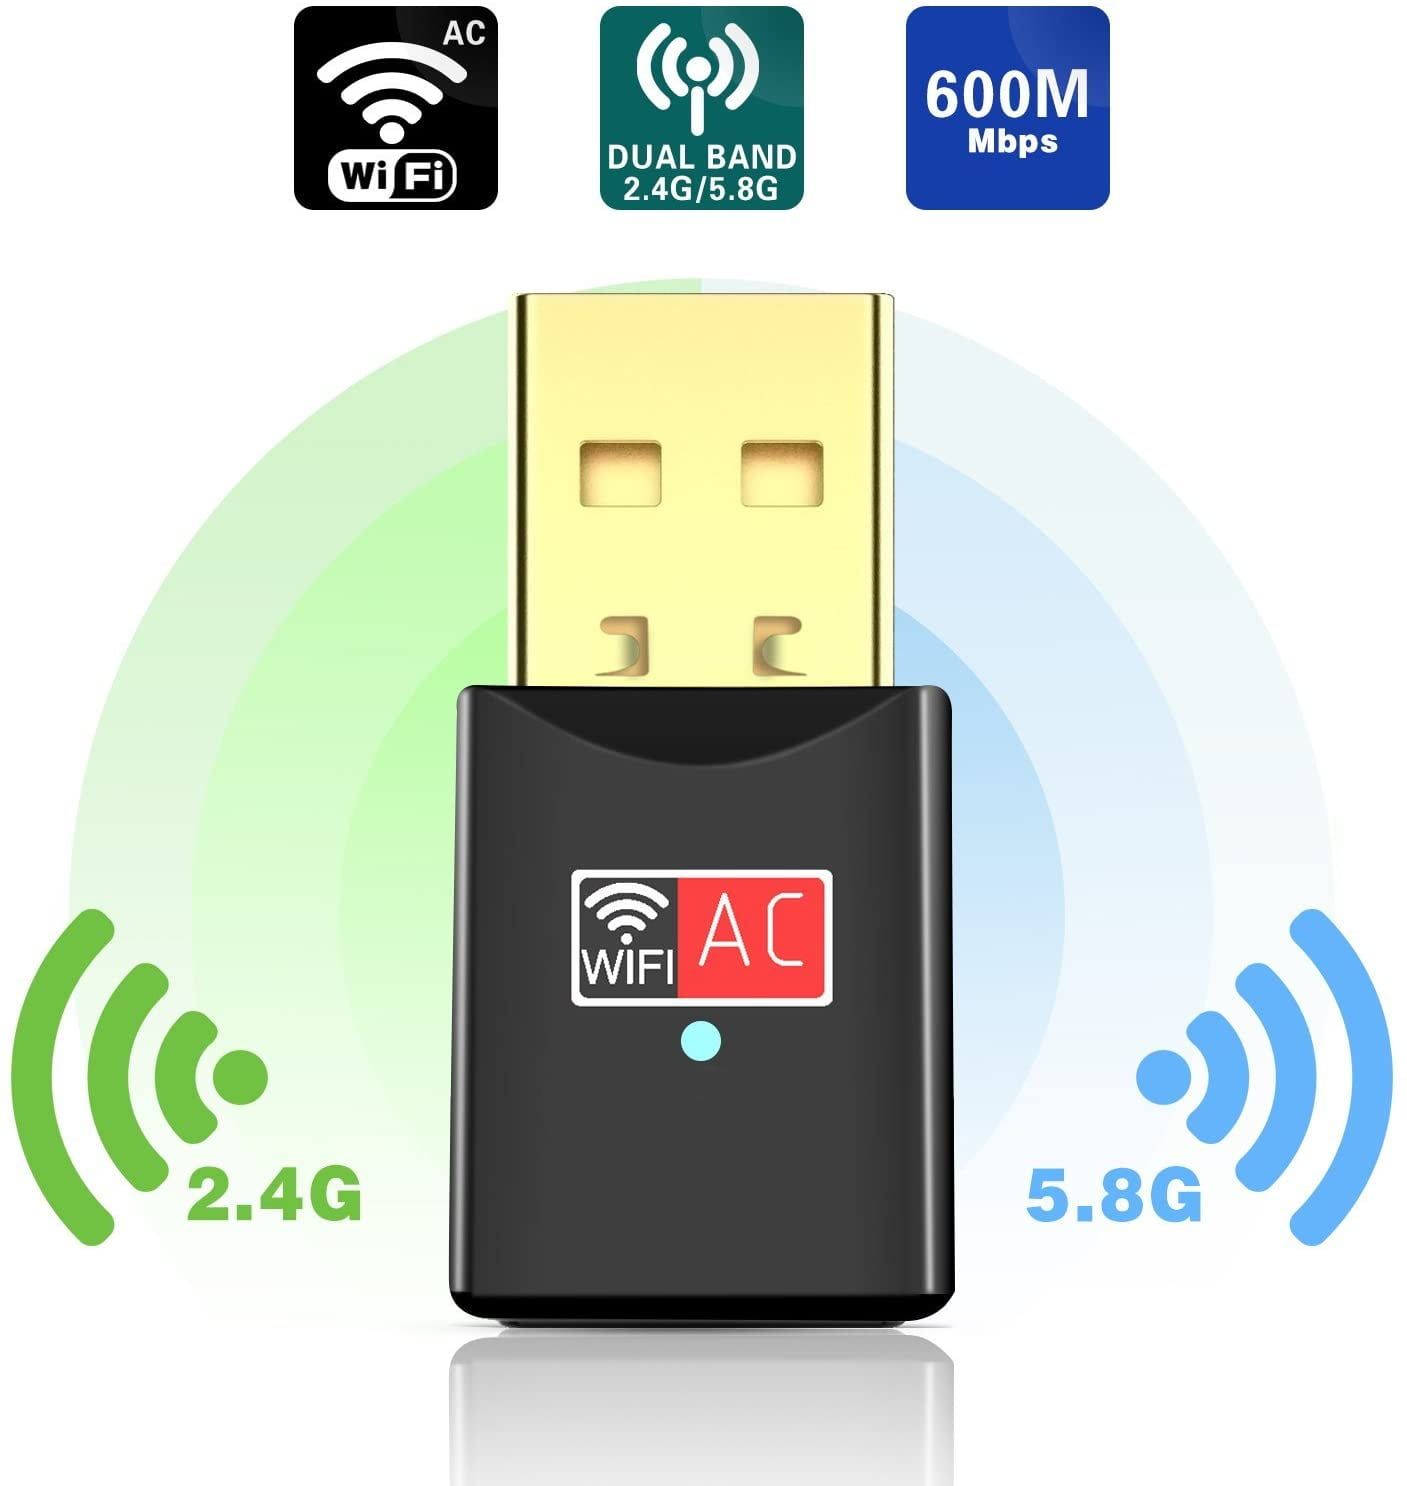 POCFGST USB Wifi Adapter 600Mbps Dual Band 2.4G/5G Mini Wi-fi Wireless Network Dongle Adapter with High Gain Antenna For Desktop Laptop PC Support Windows XP Vista/7/8/8.1/10 Mac OS X 10.4-10.12